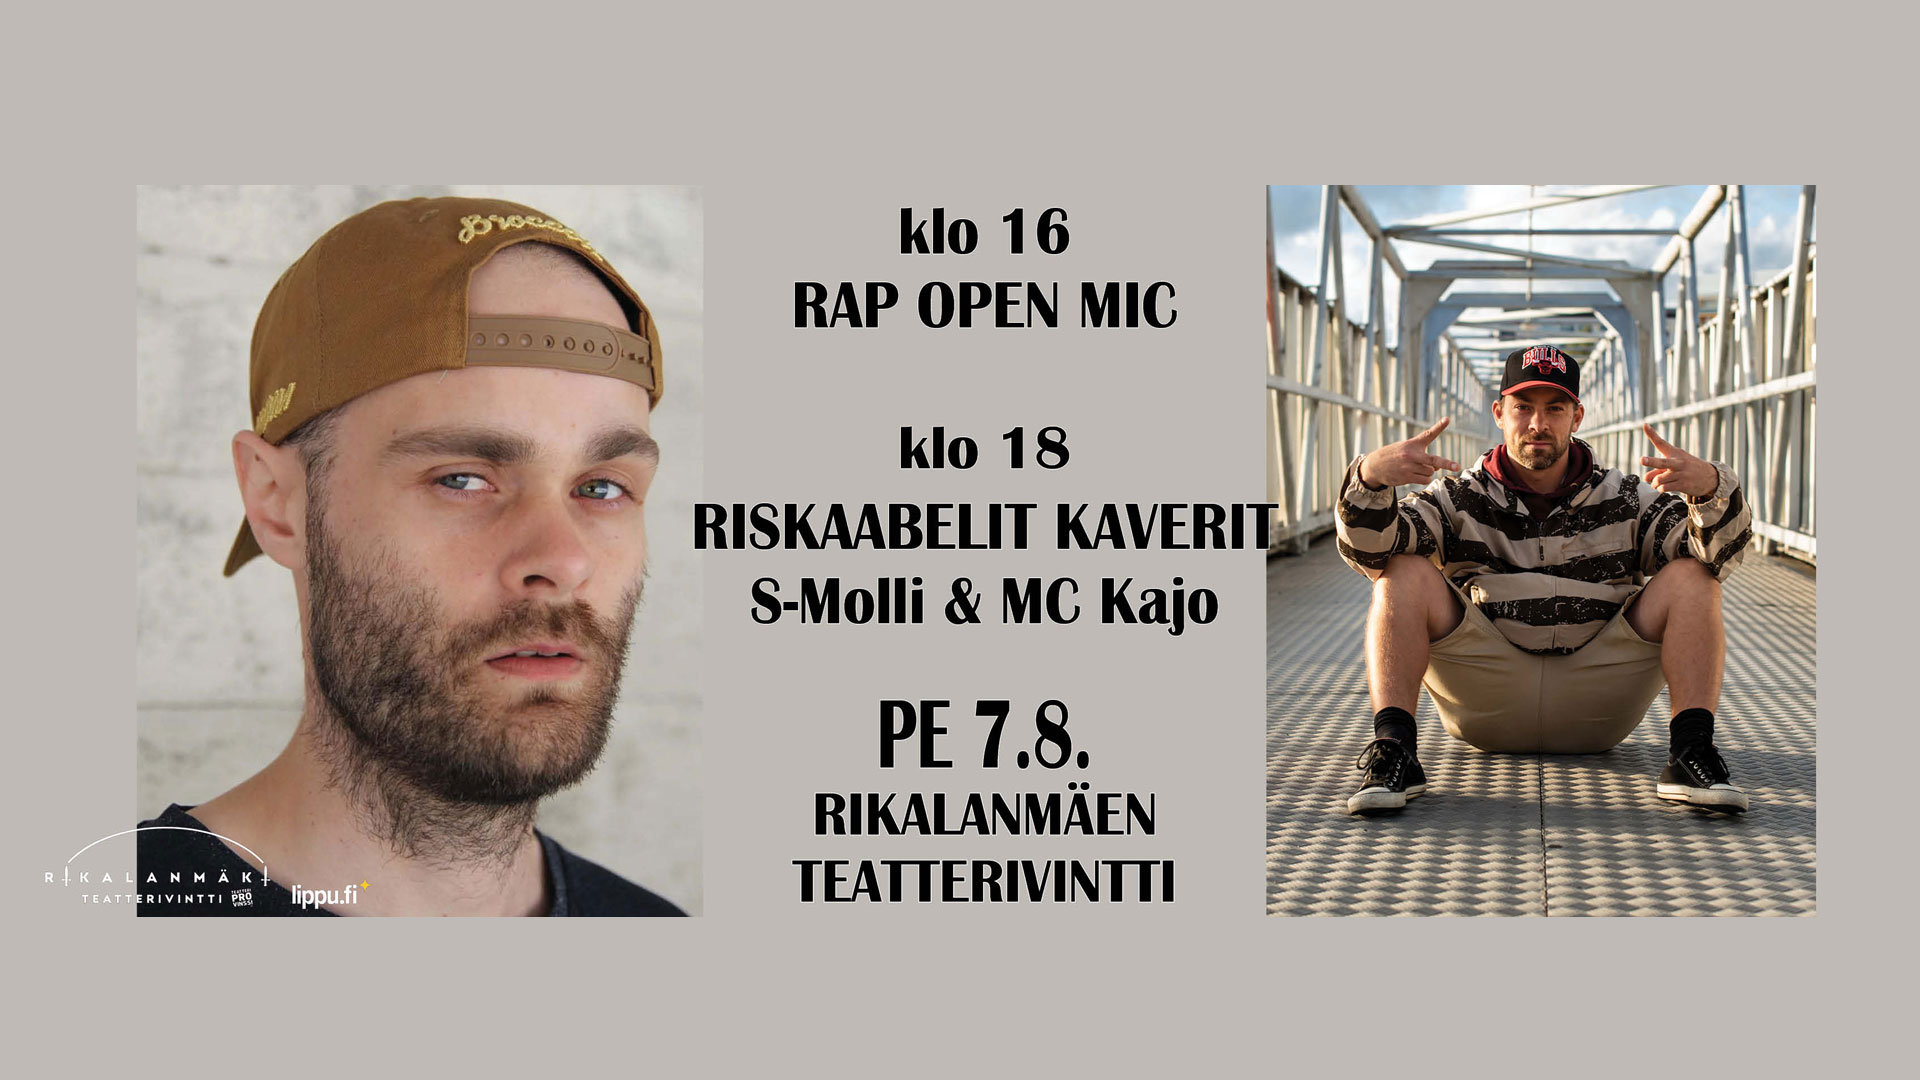 Riskaabelit Kaverit: Freestyle Rap Show & Open Mic pe 7.8.2020 klo 16.00